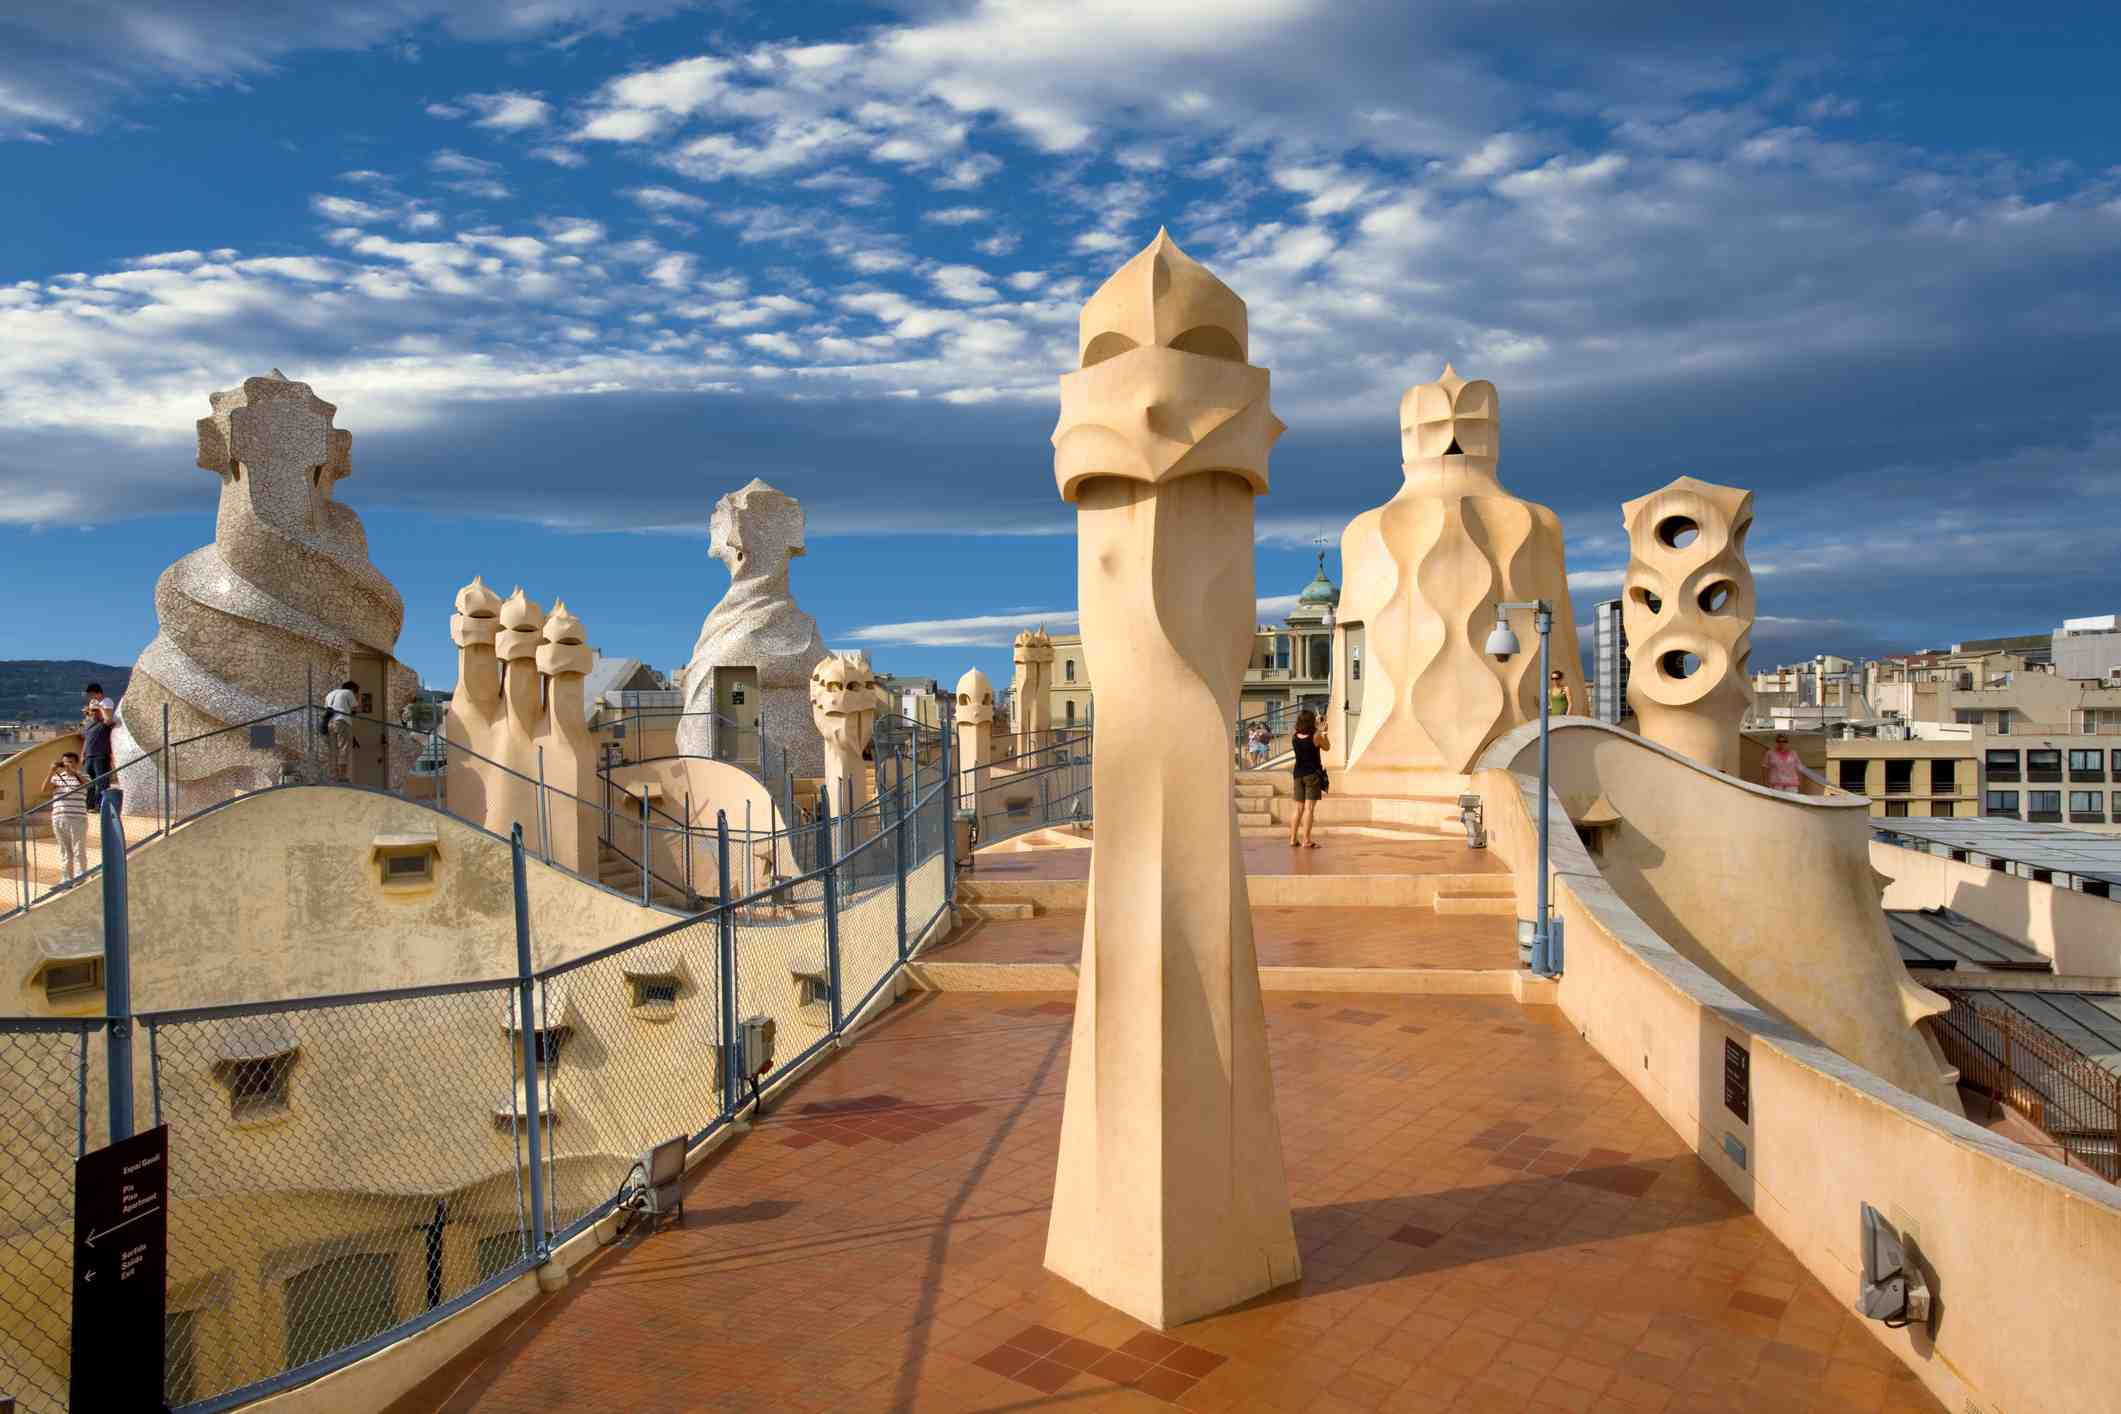 The roof of Casa Mila.